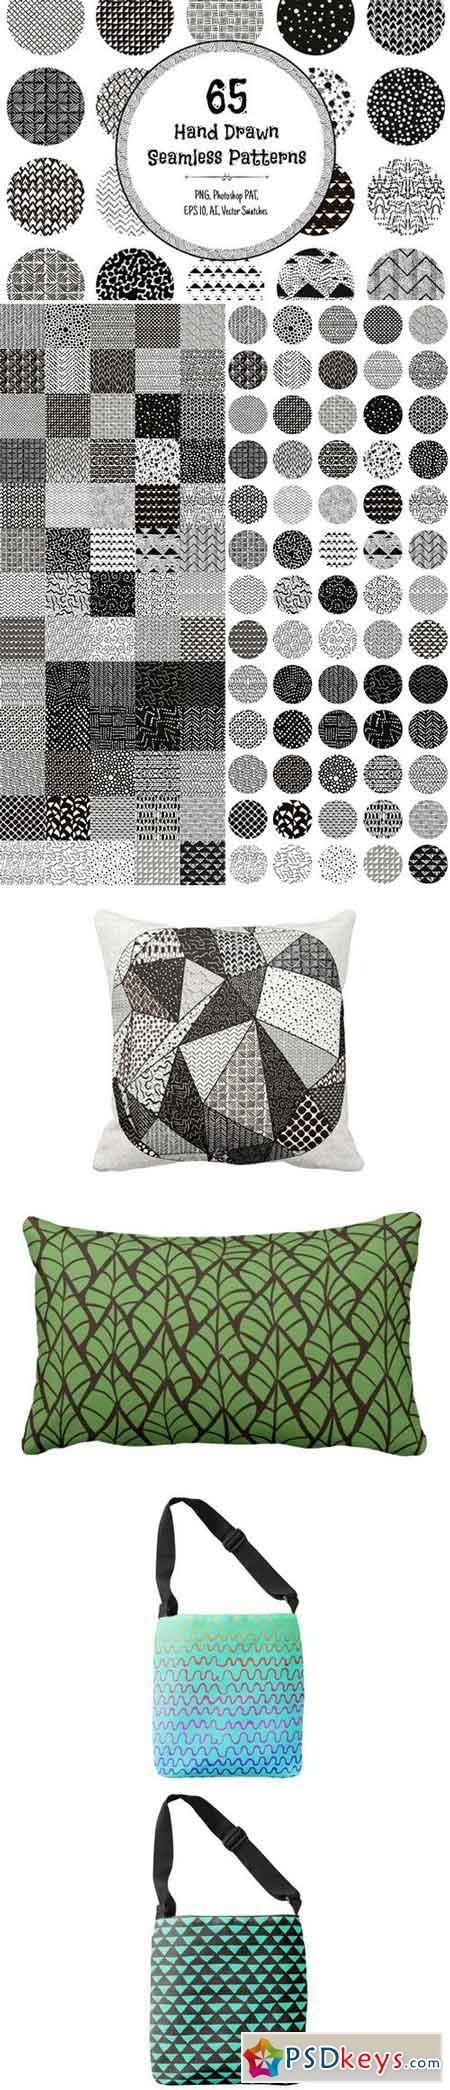 65 Monochrome Patterns 640104